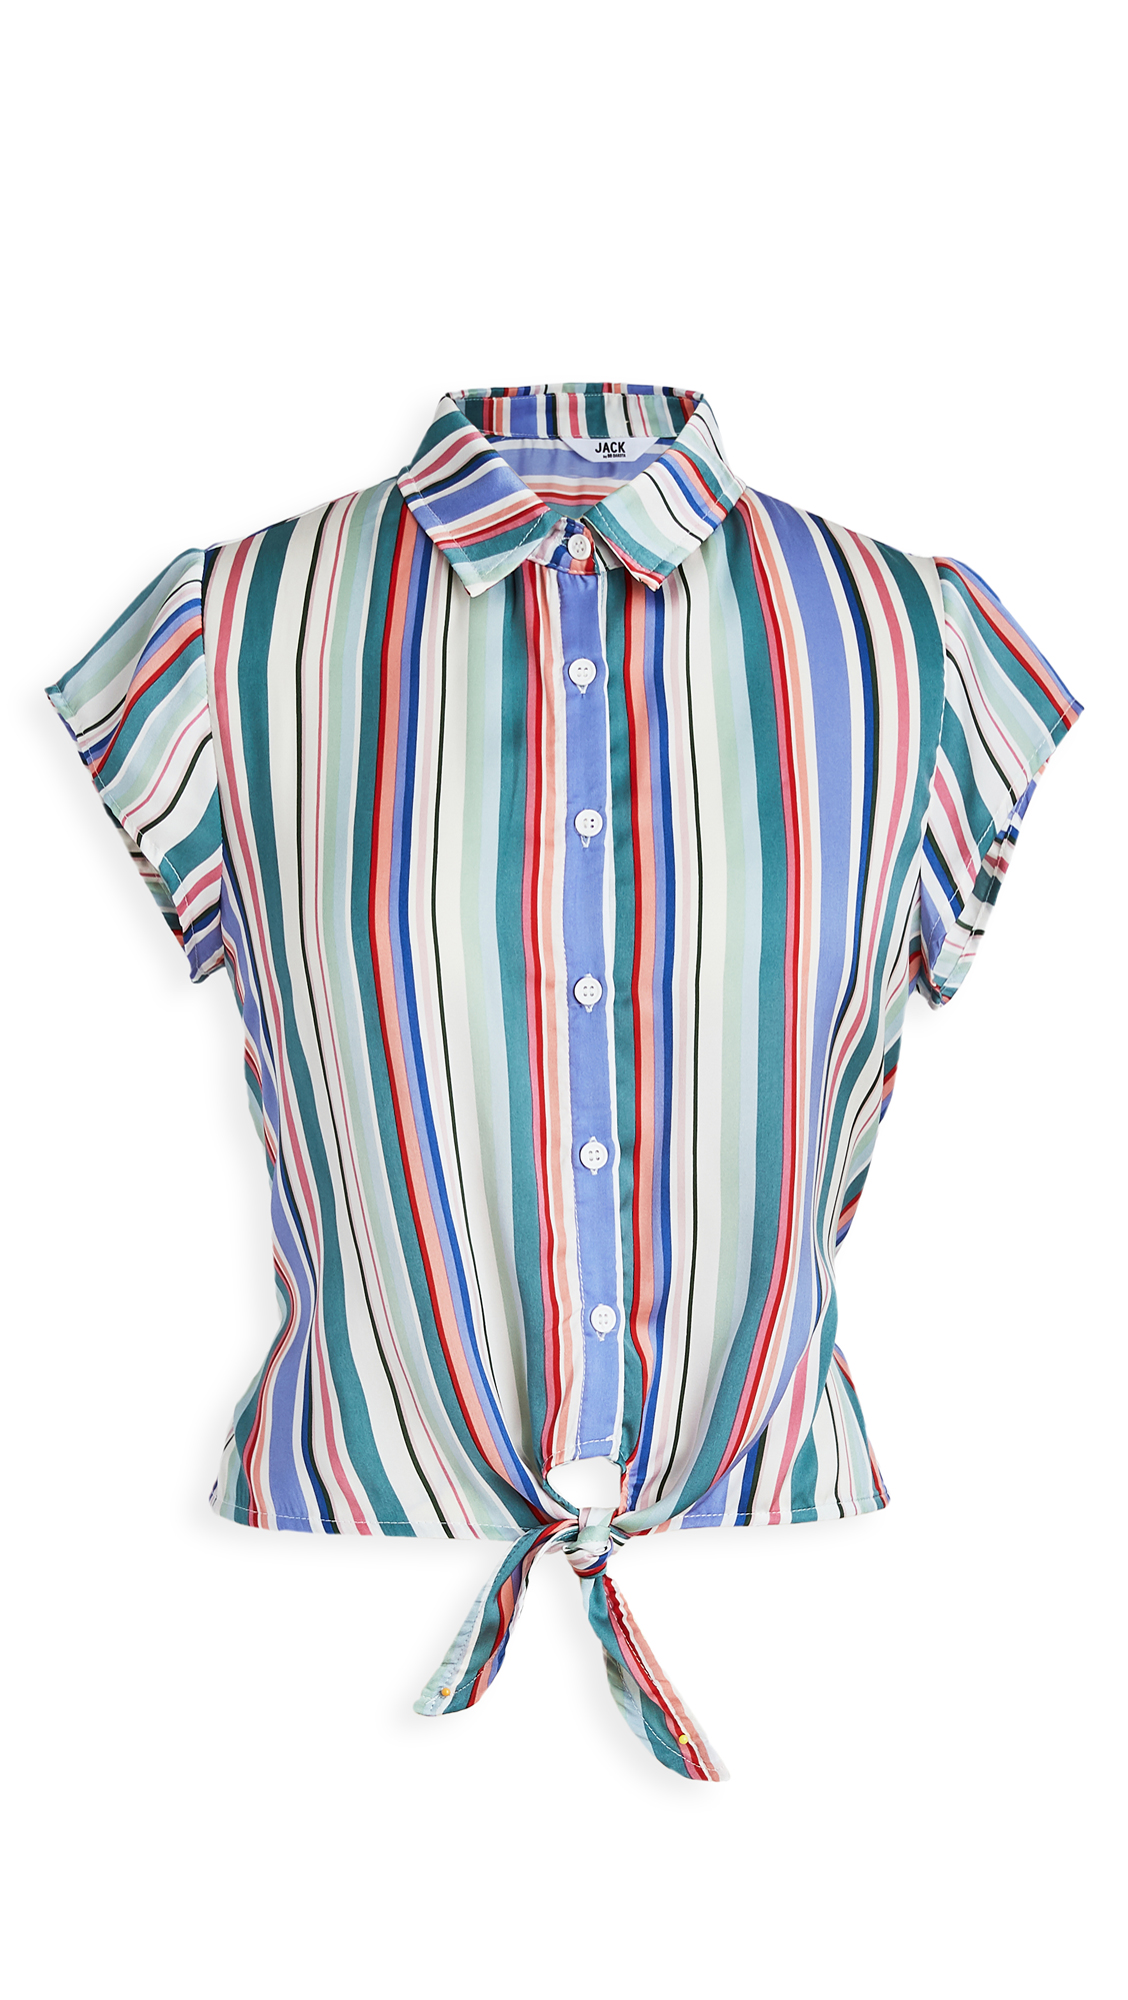 BB Dakota Jack By BB Dakota Shirt Feelings Button Down - 30% Off Sale